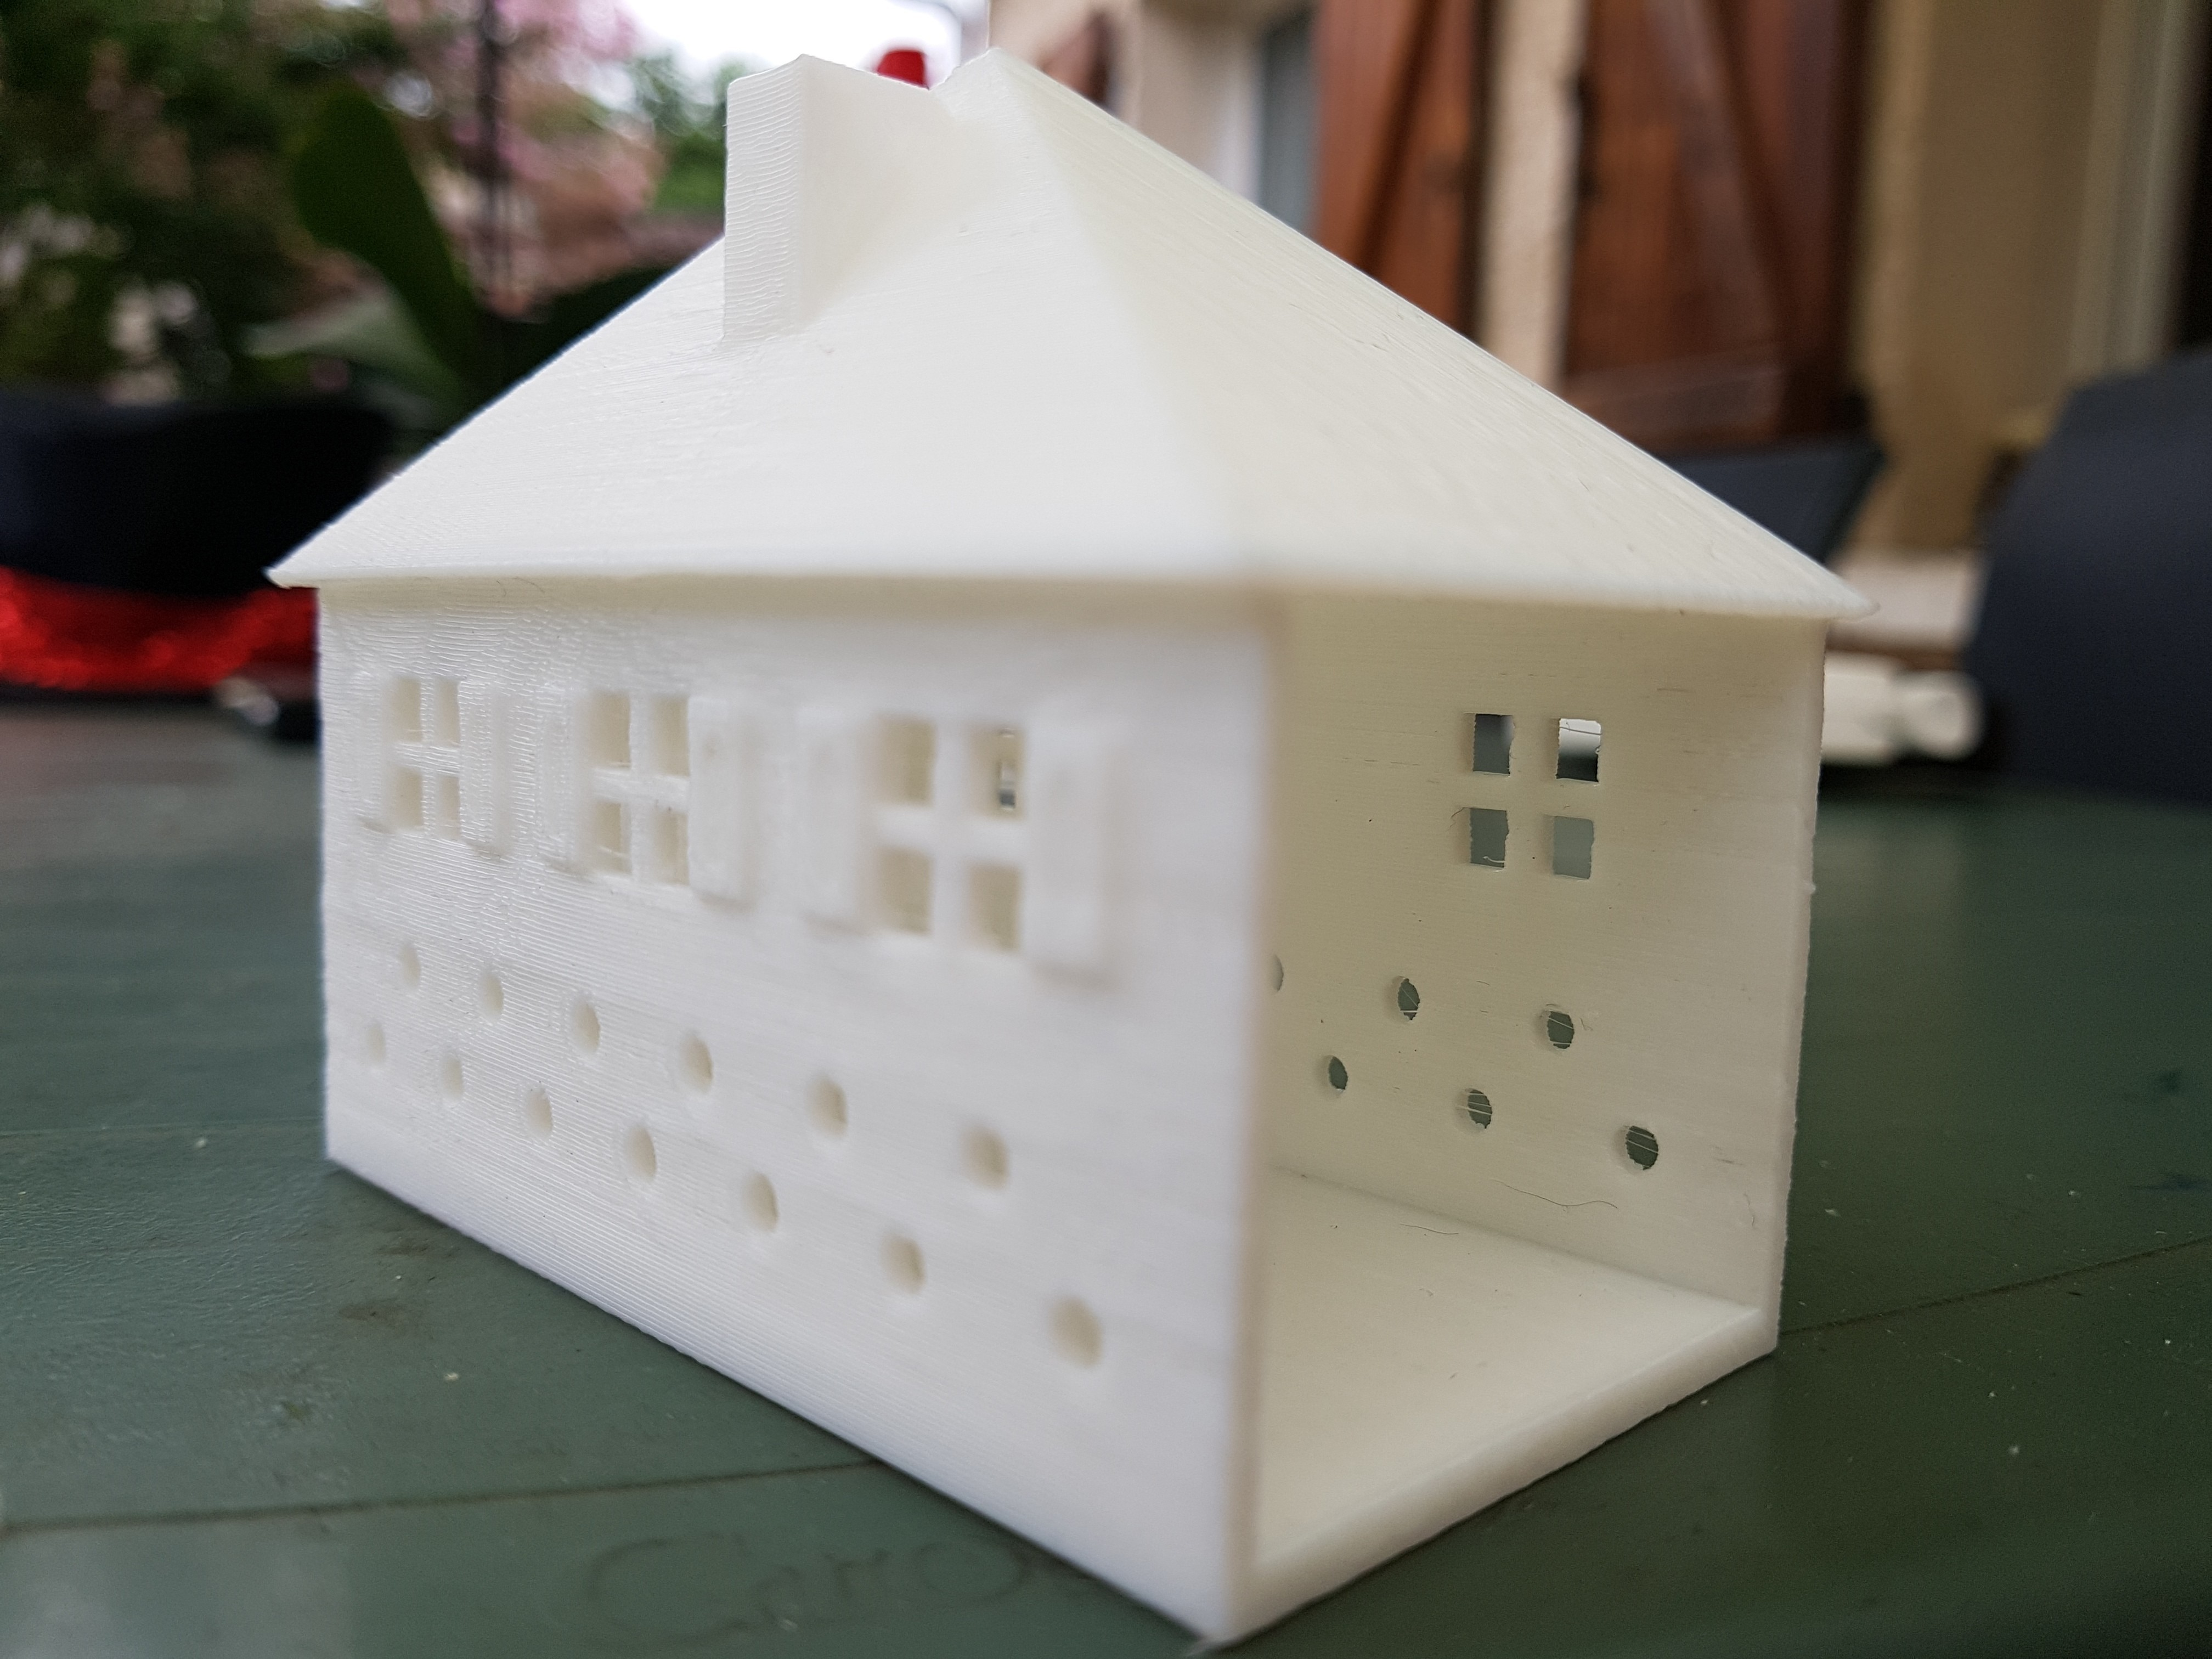 20170804_160620.jpg Download STL file SMALL ILLUMINATED HOUSE • 3D printable template, catf3d